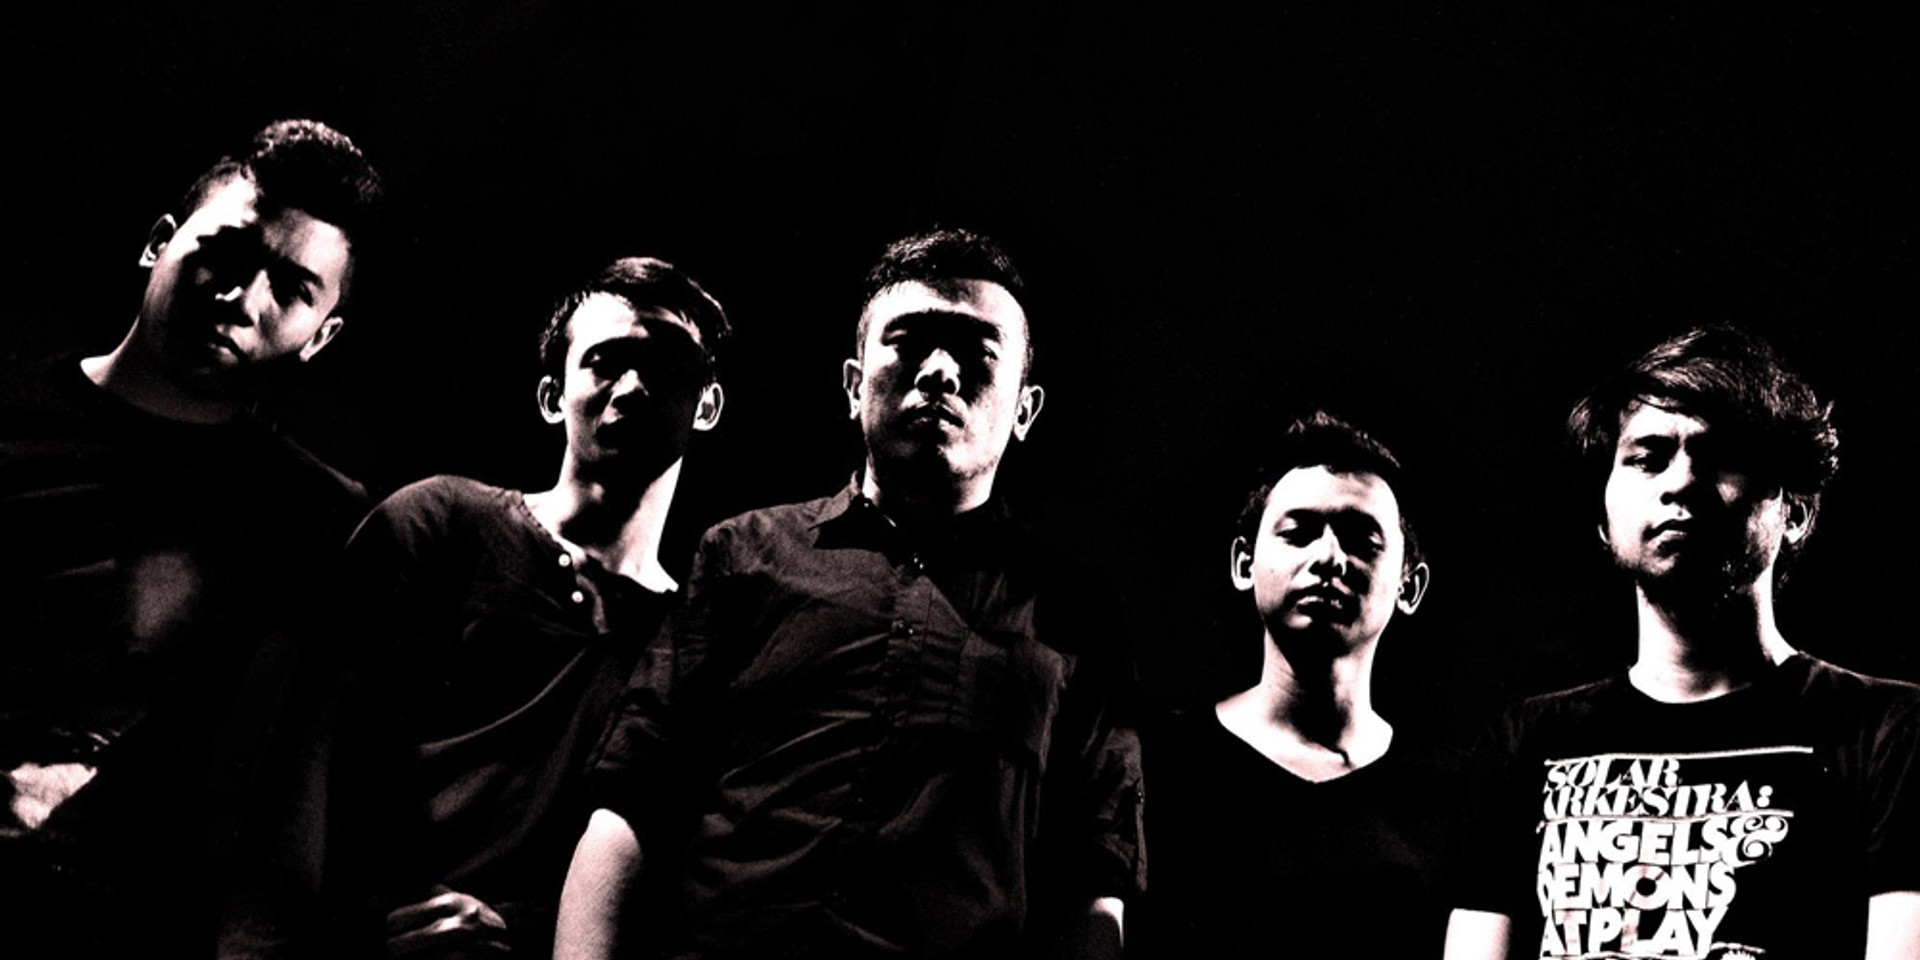 Paris In The Making announce mystical new album, share teaser video